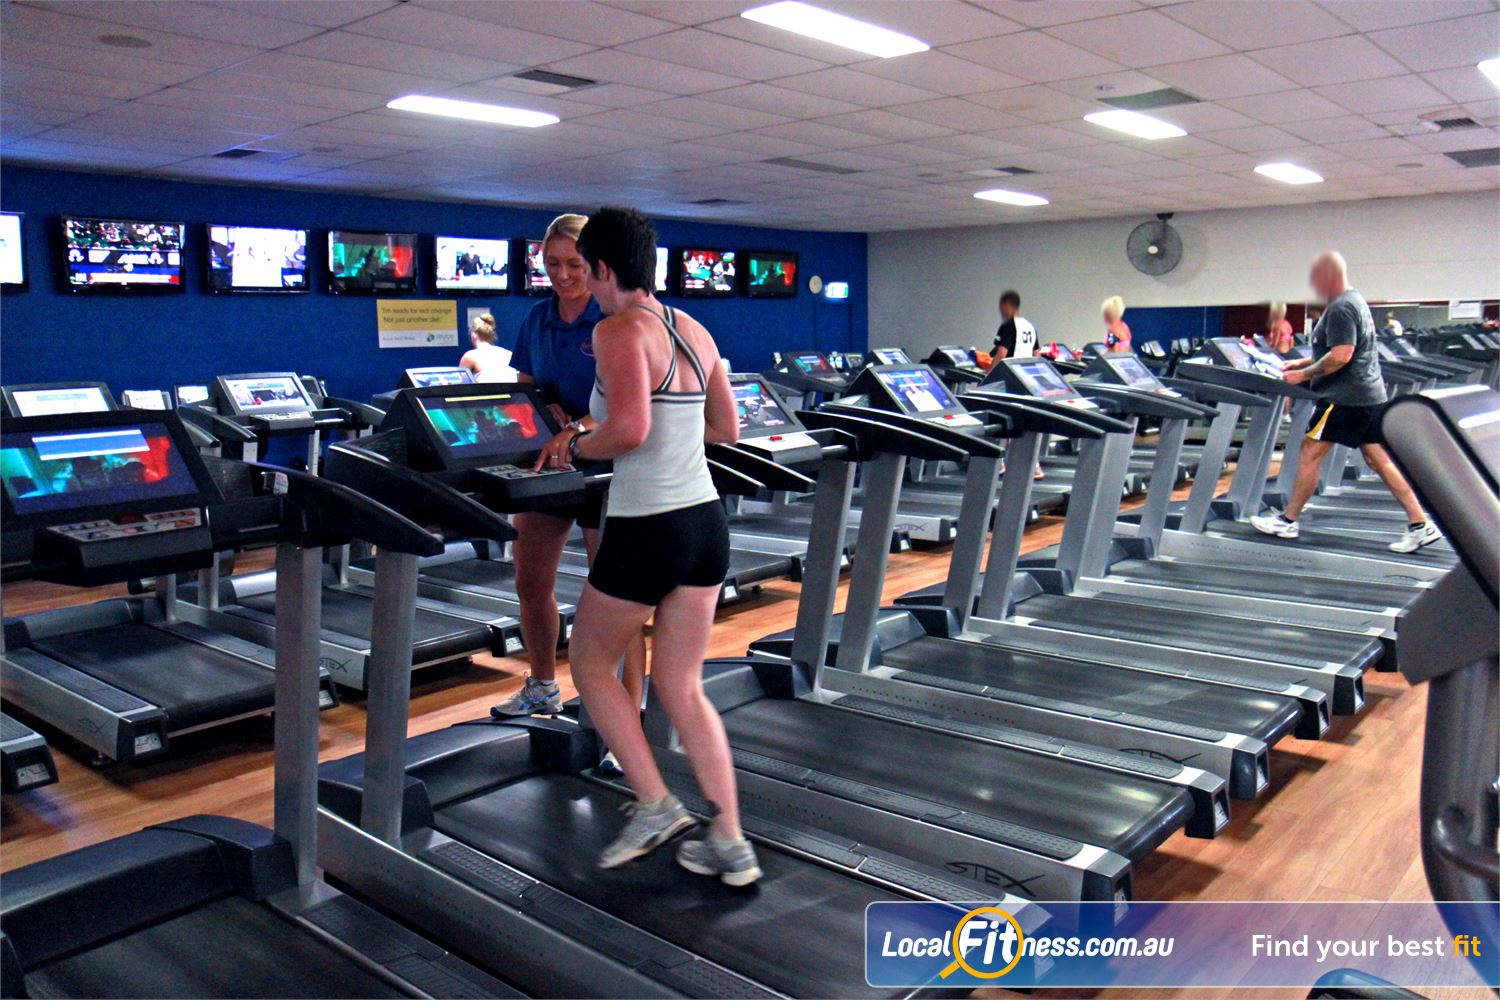 Goodlife Health Clubs Near Cleveland Tune into your favorite shows on your personalised LCD screen or cardio theatre.